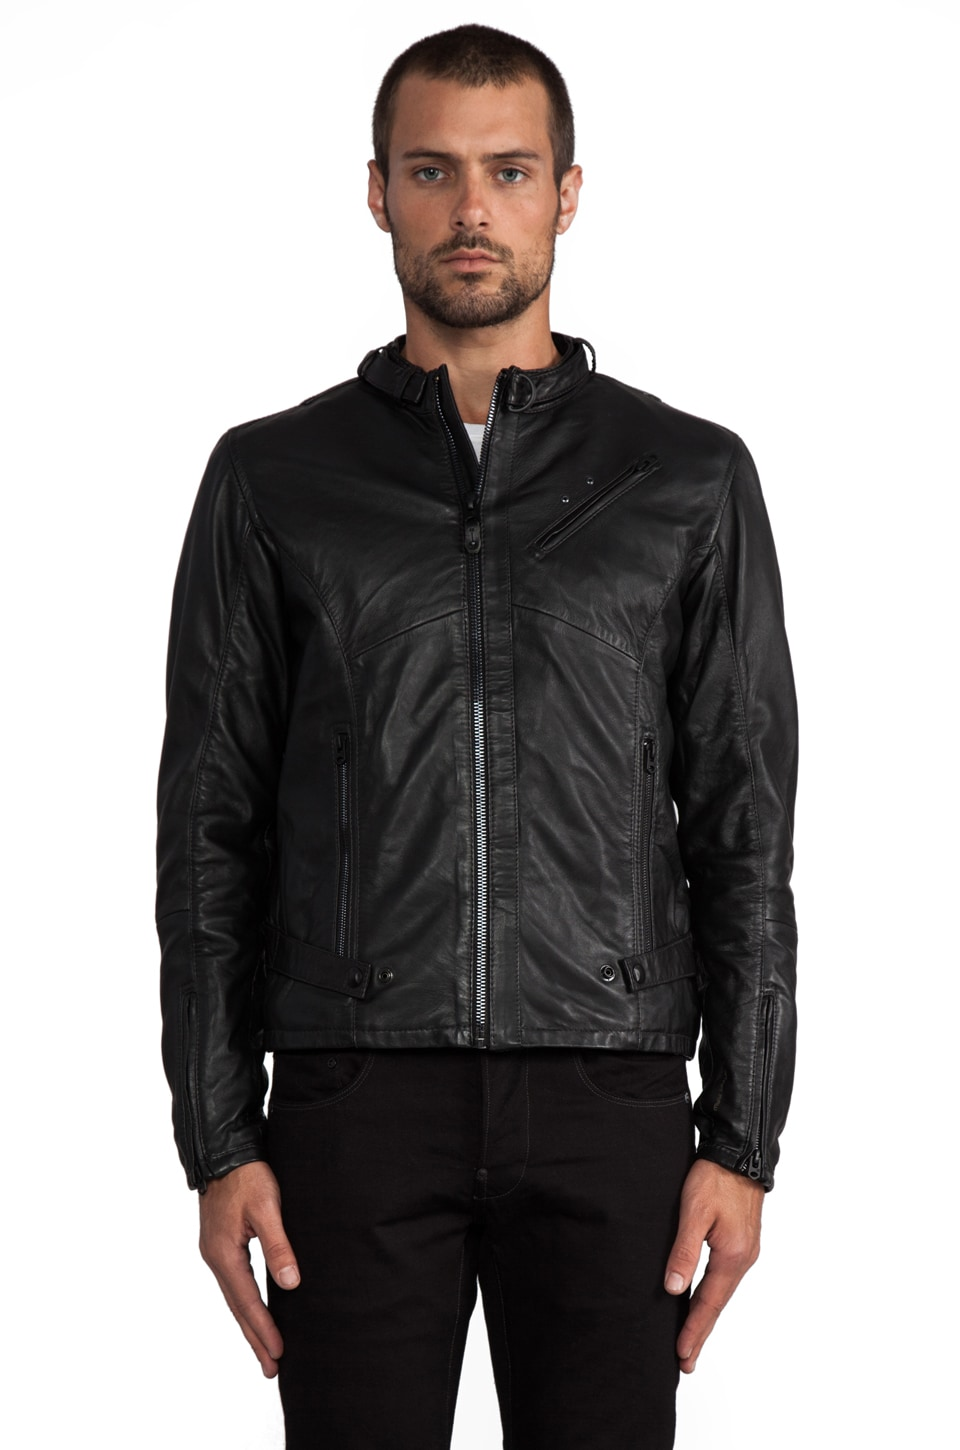 G-Star Chopper Leather Jacket in Black